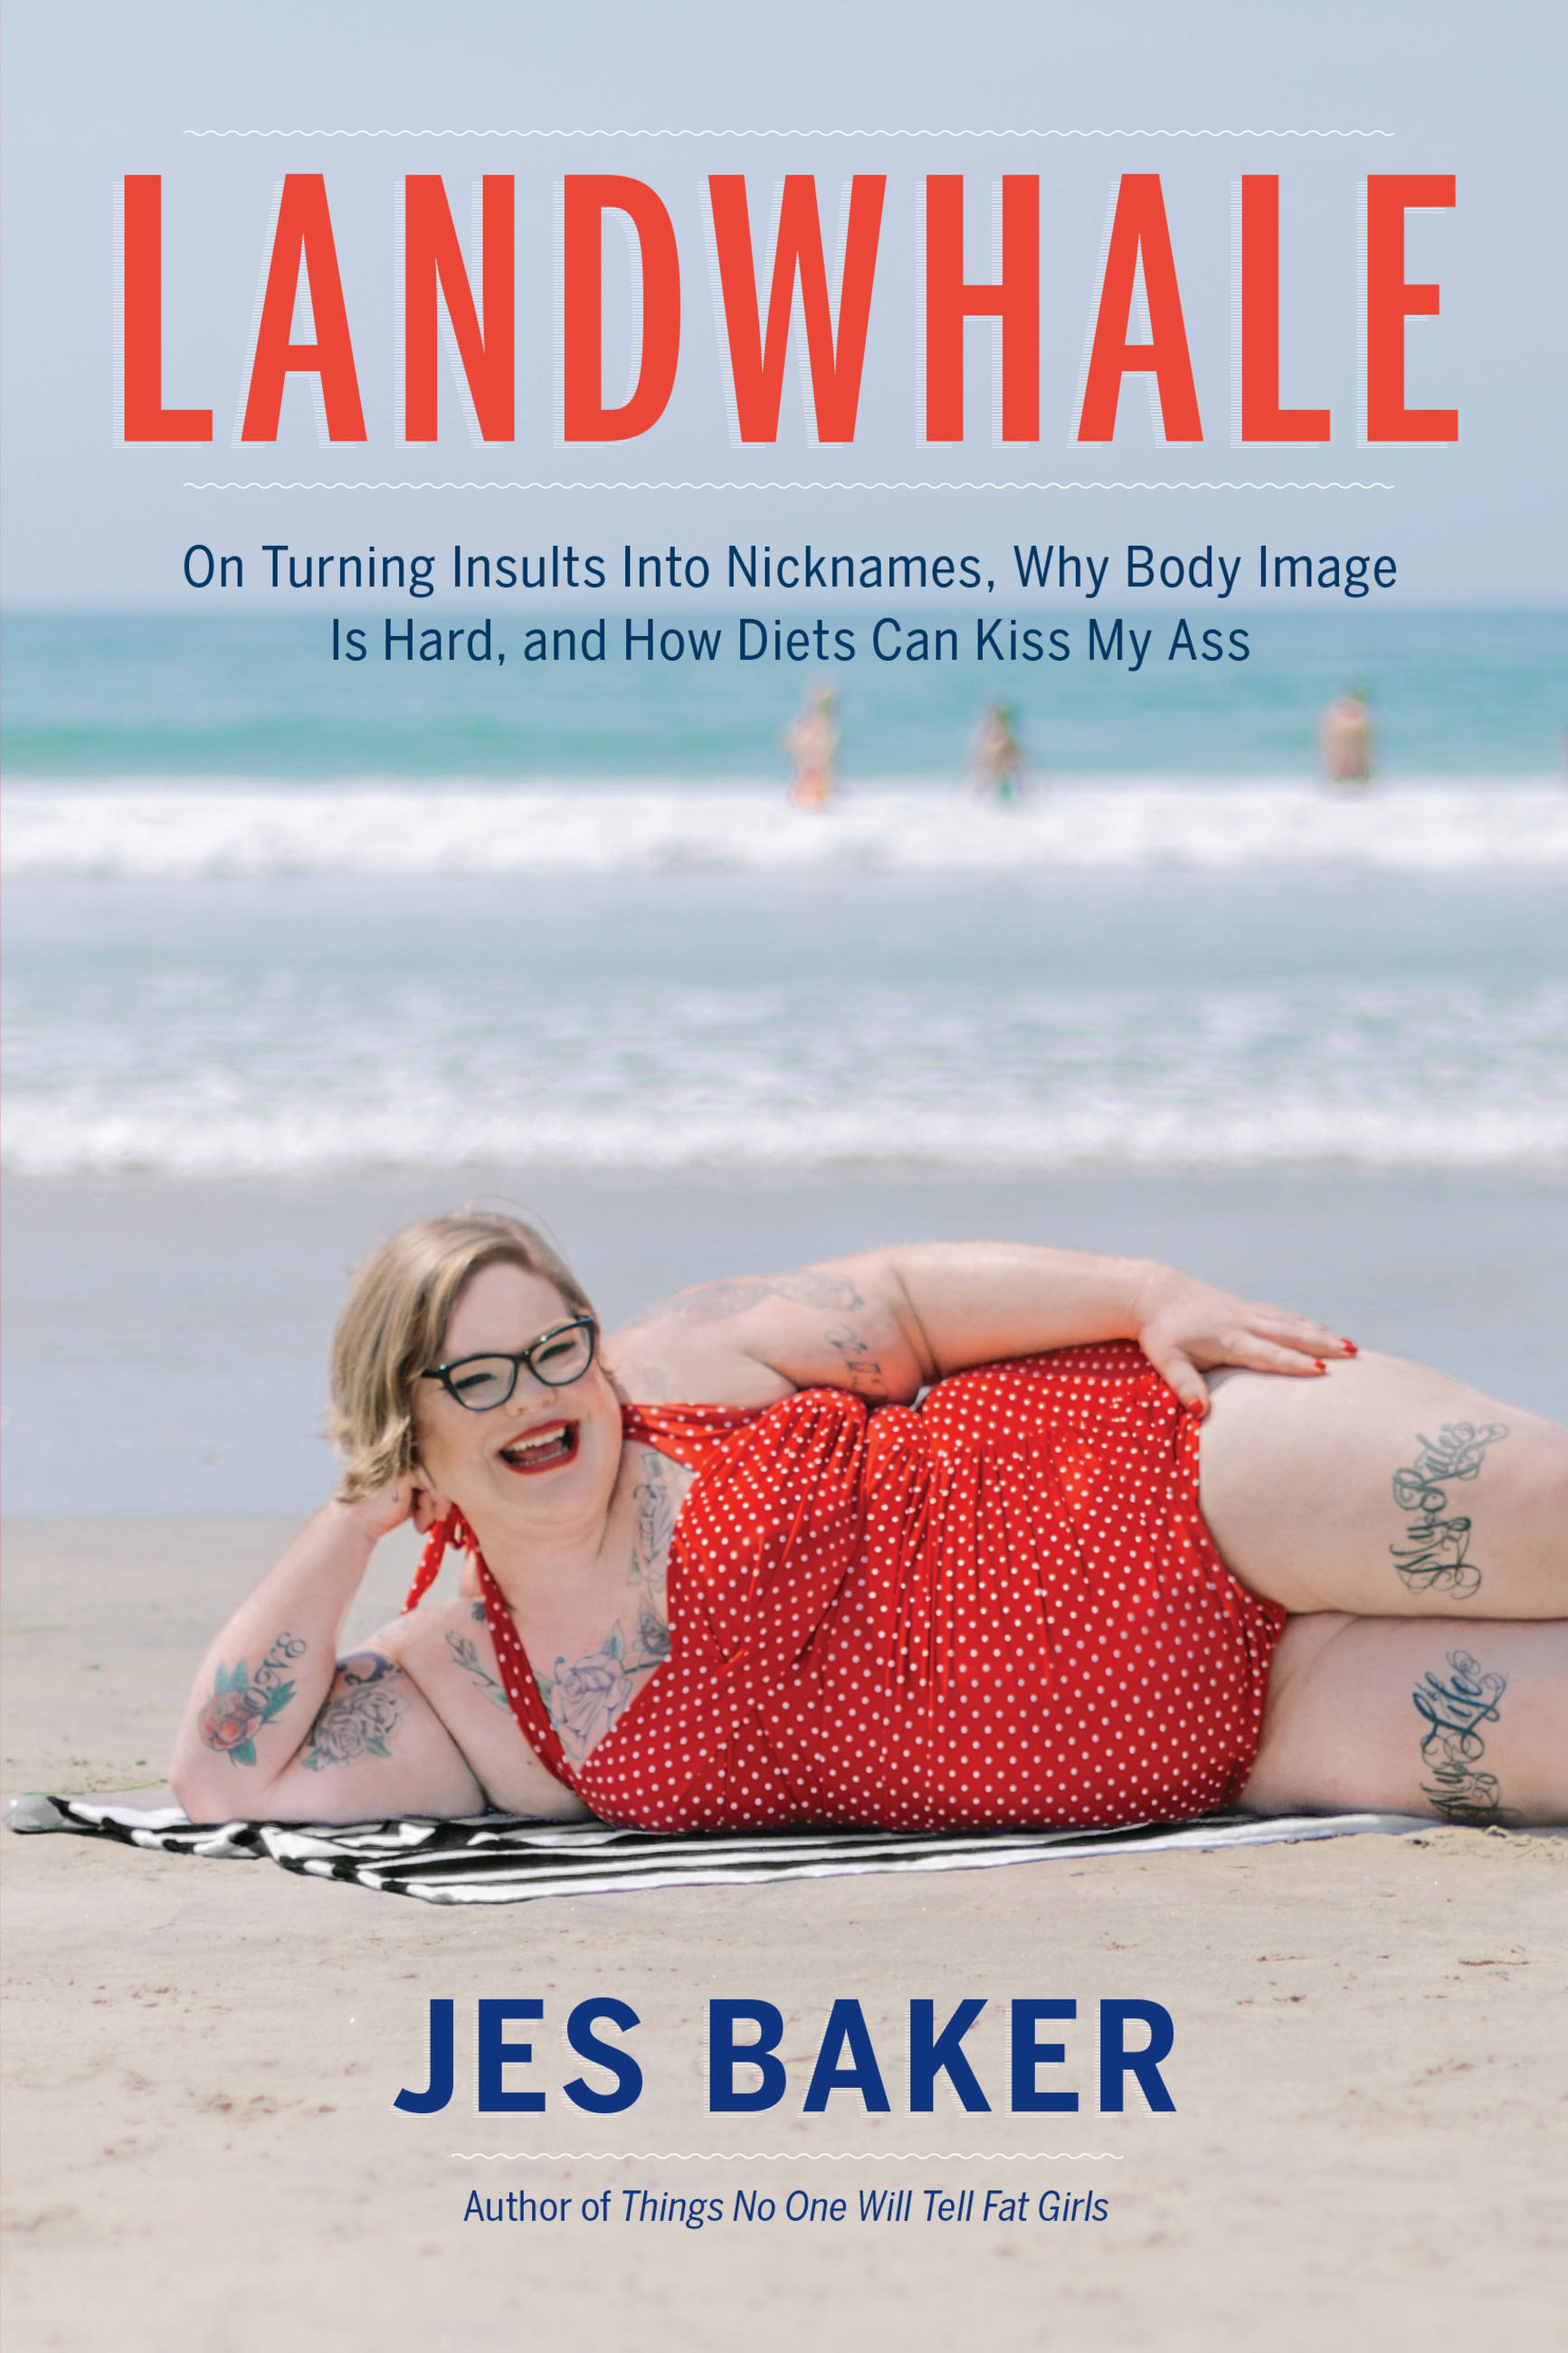 Landwhale On Turning Insults Into Nicknames, Why Body Image Is Hard, and How Diets Can Kiss My Ass